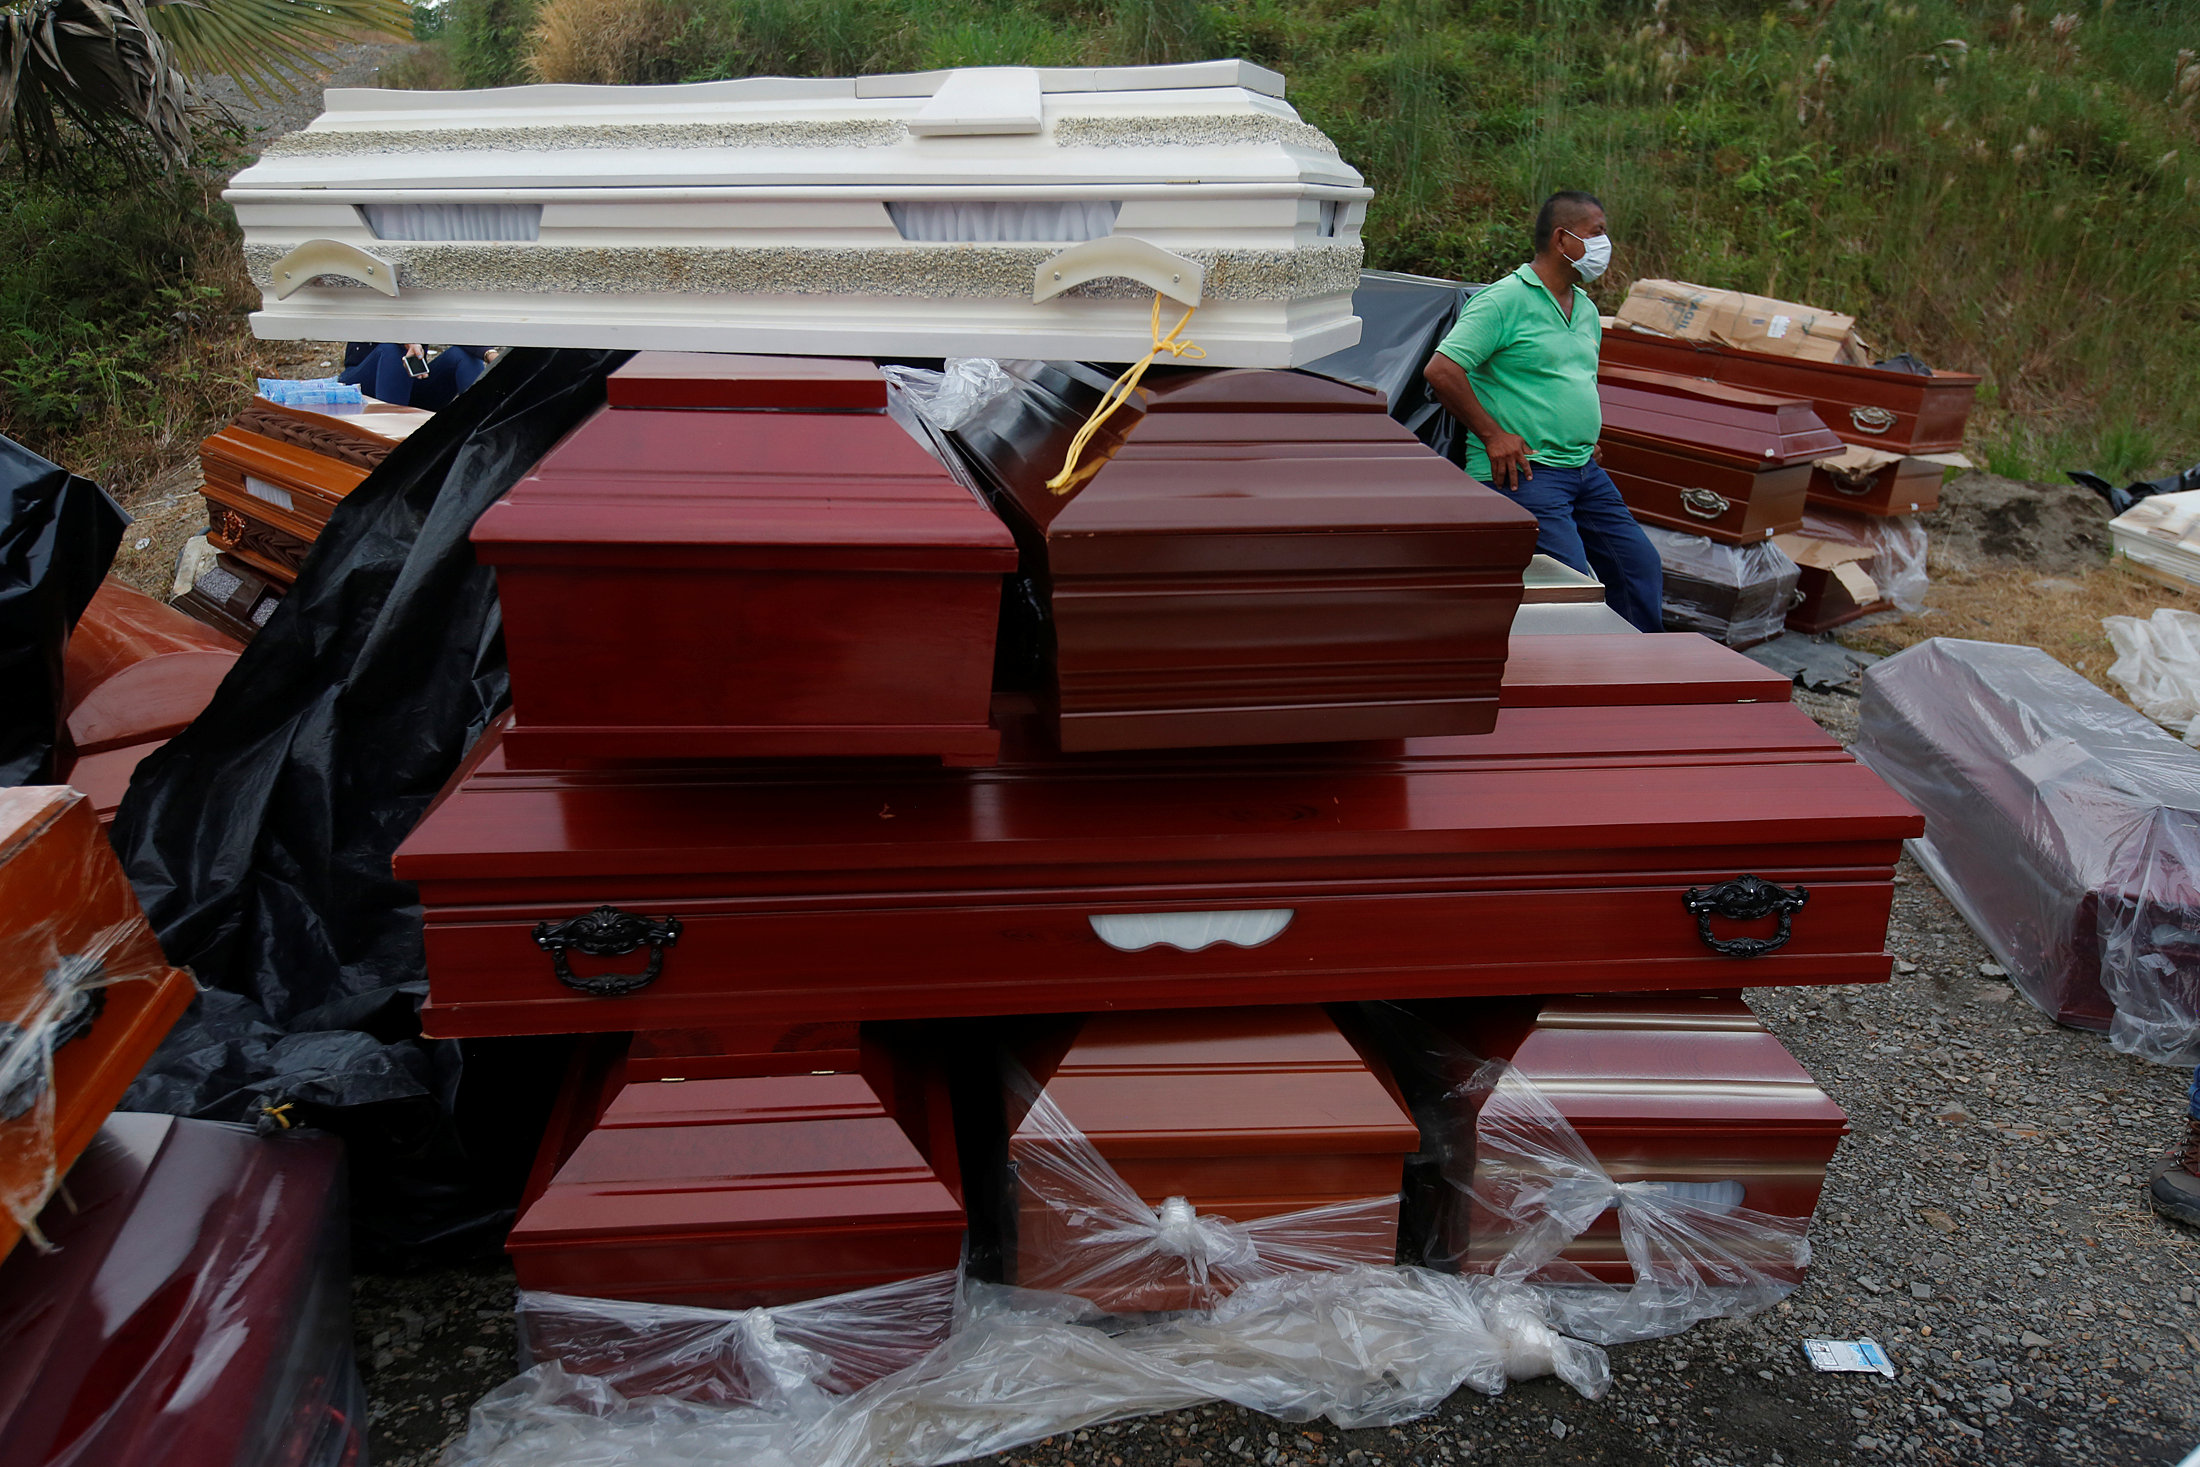 New coffins for reburials, are seen in a cemetery after flooding and mudslides caused by heavy rains leading several rivers to overflow, pushing sediment and rocks into buildings and roads, in Mocoa, Colombia April 3, 2017. REUTERS/Jaime Saldarriaga